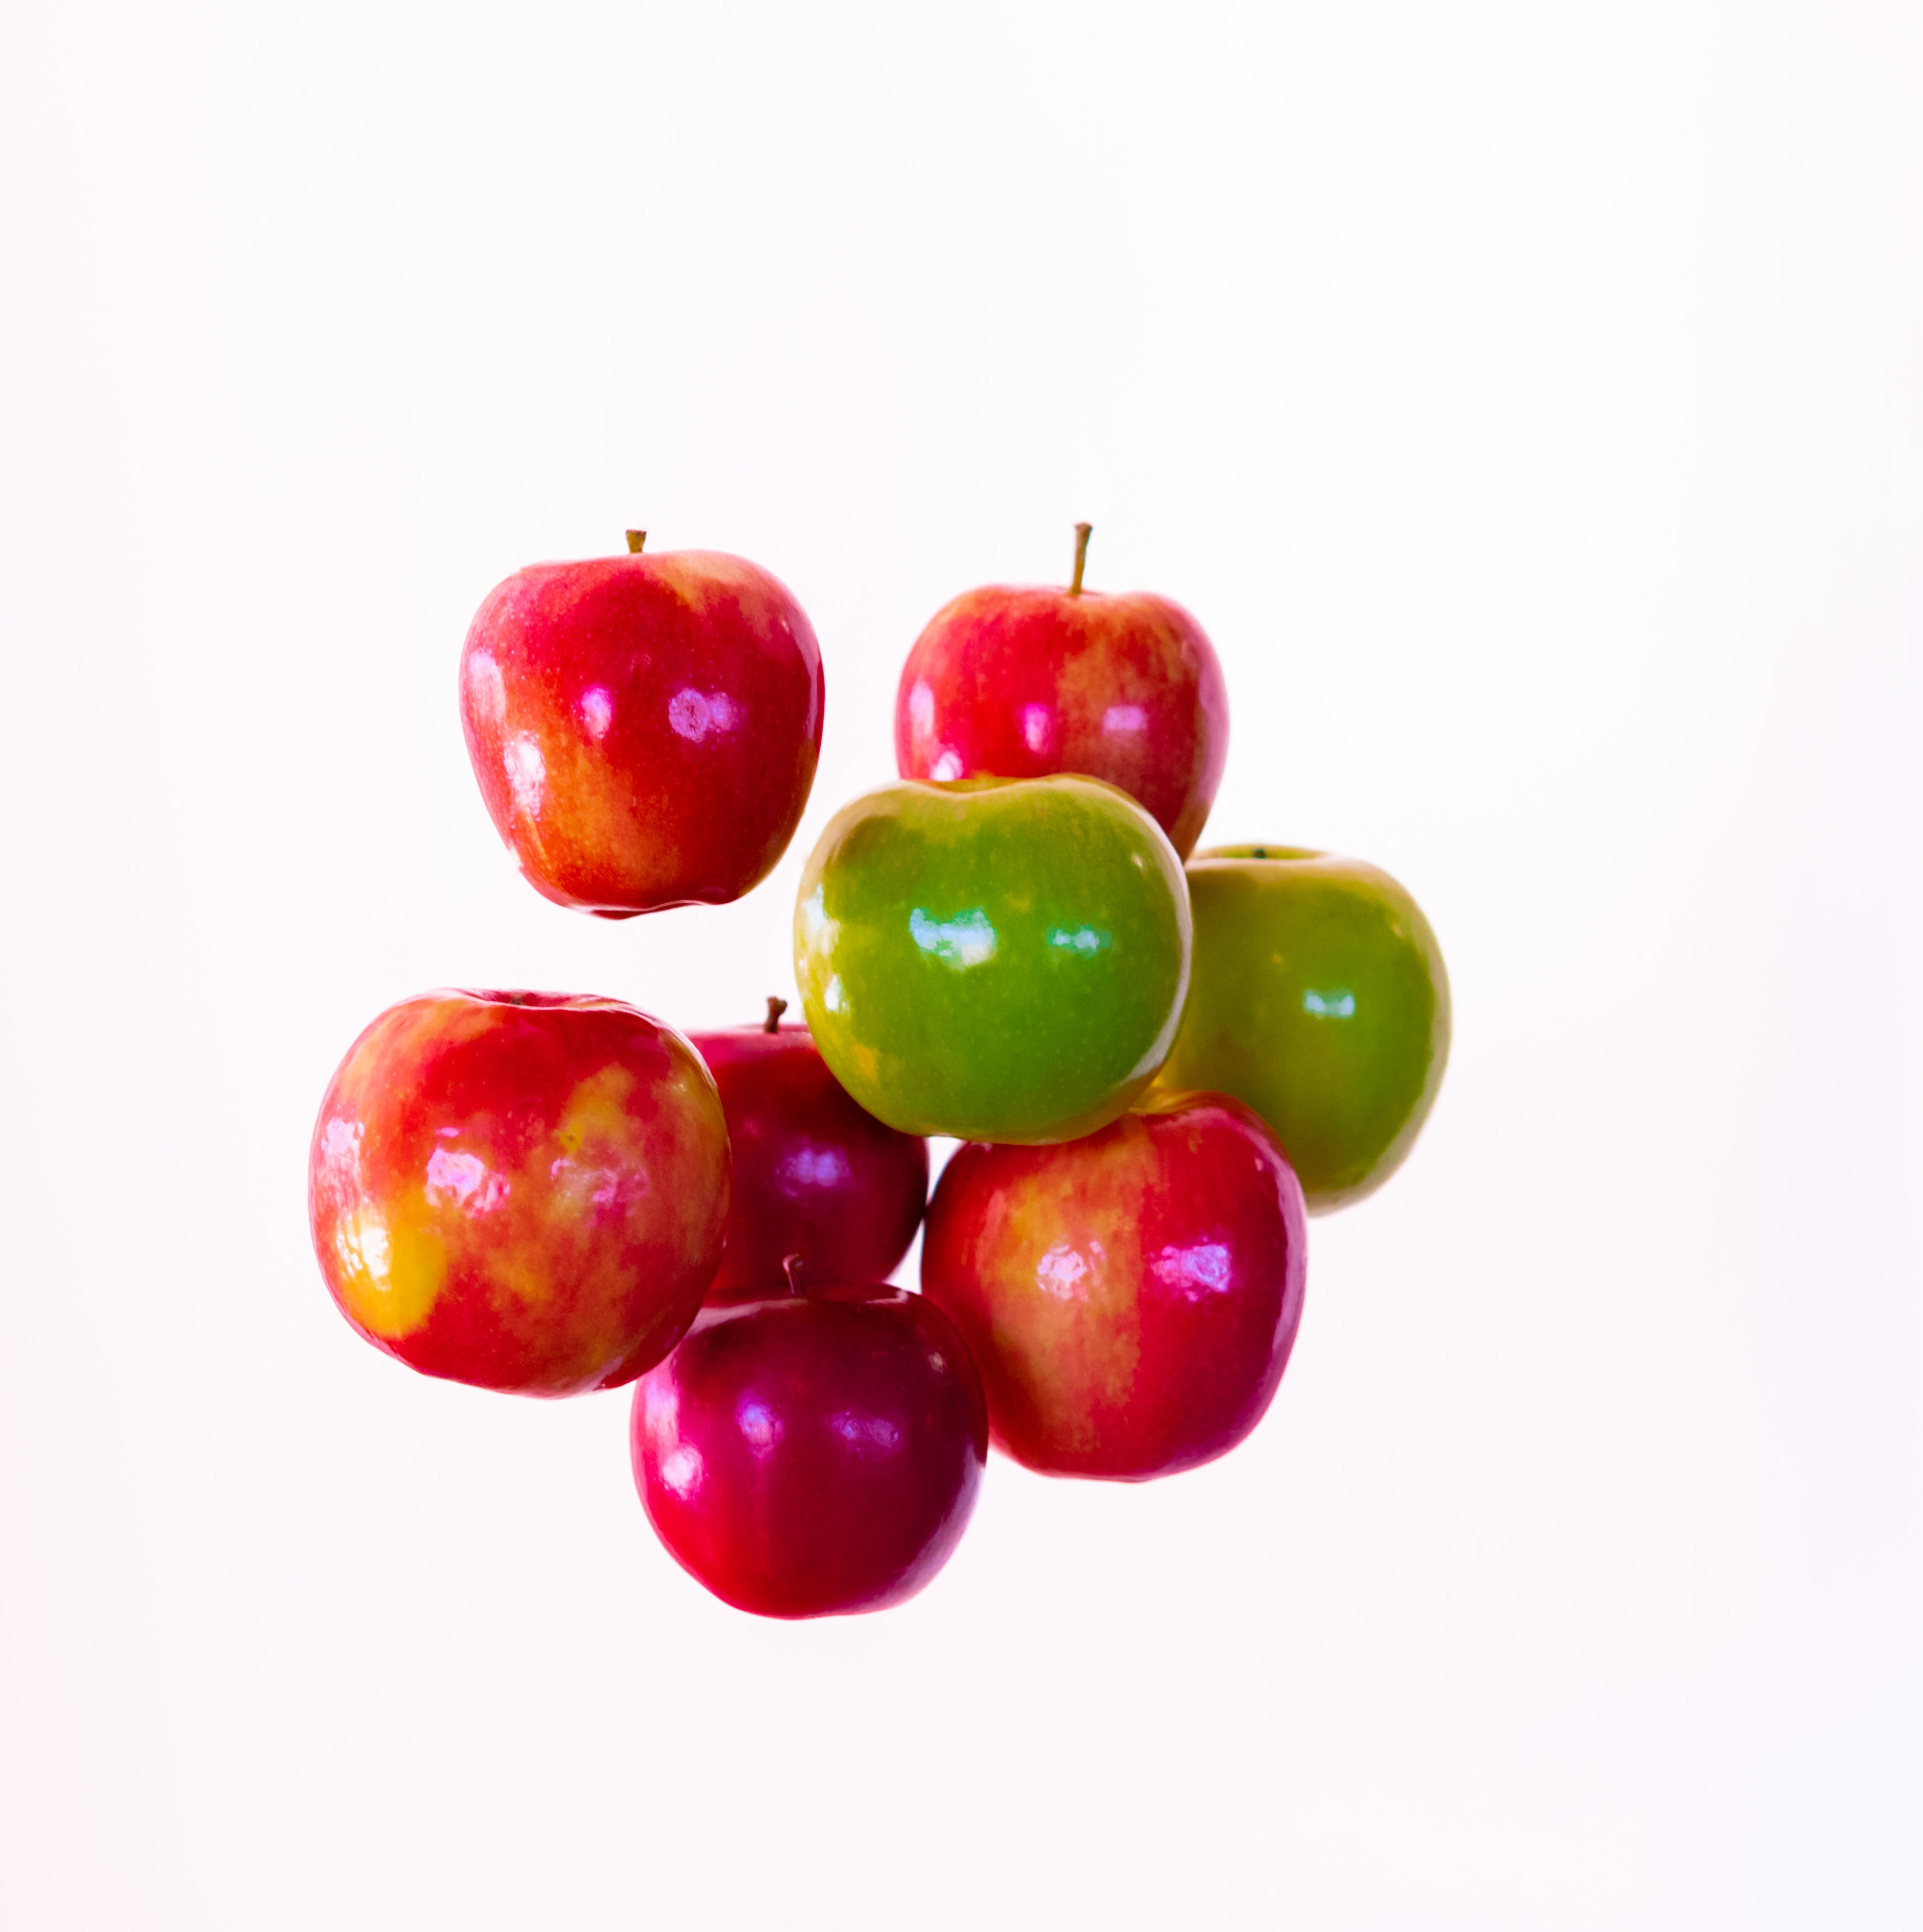 Free stock photo of appealing, apples, colours, fresh fruit